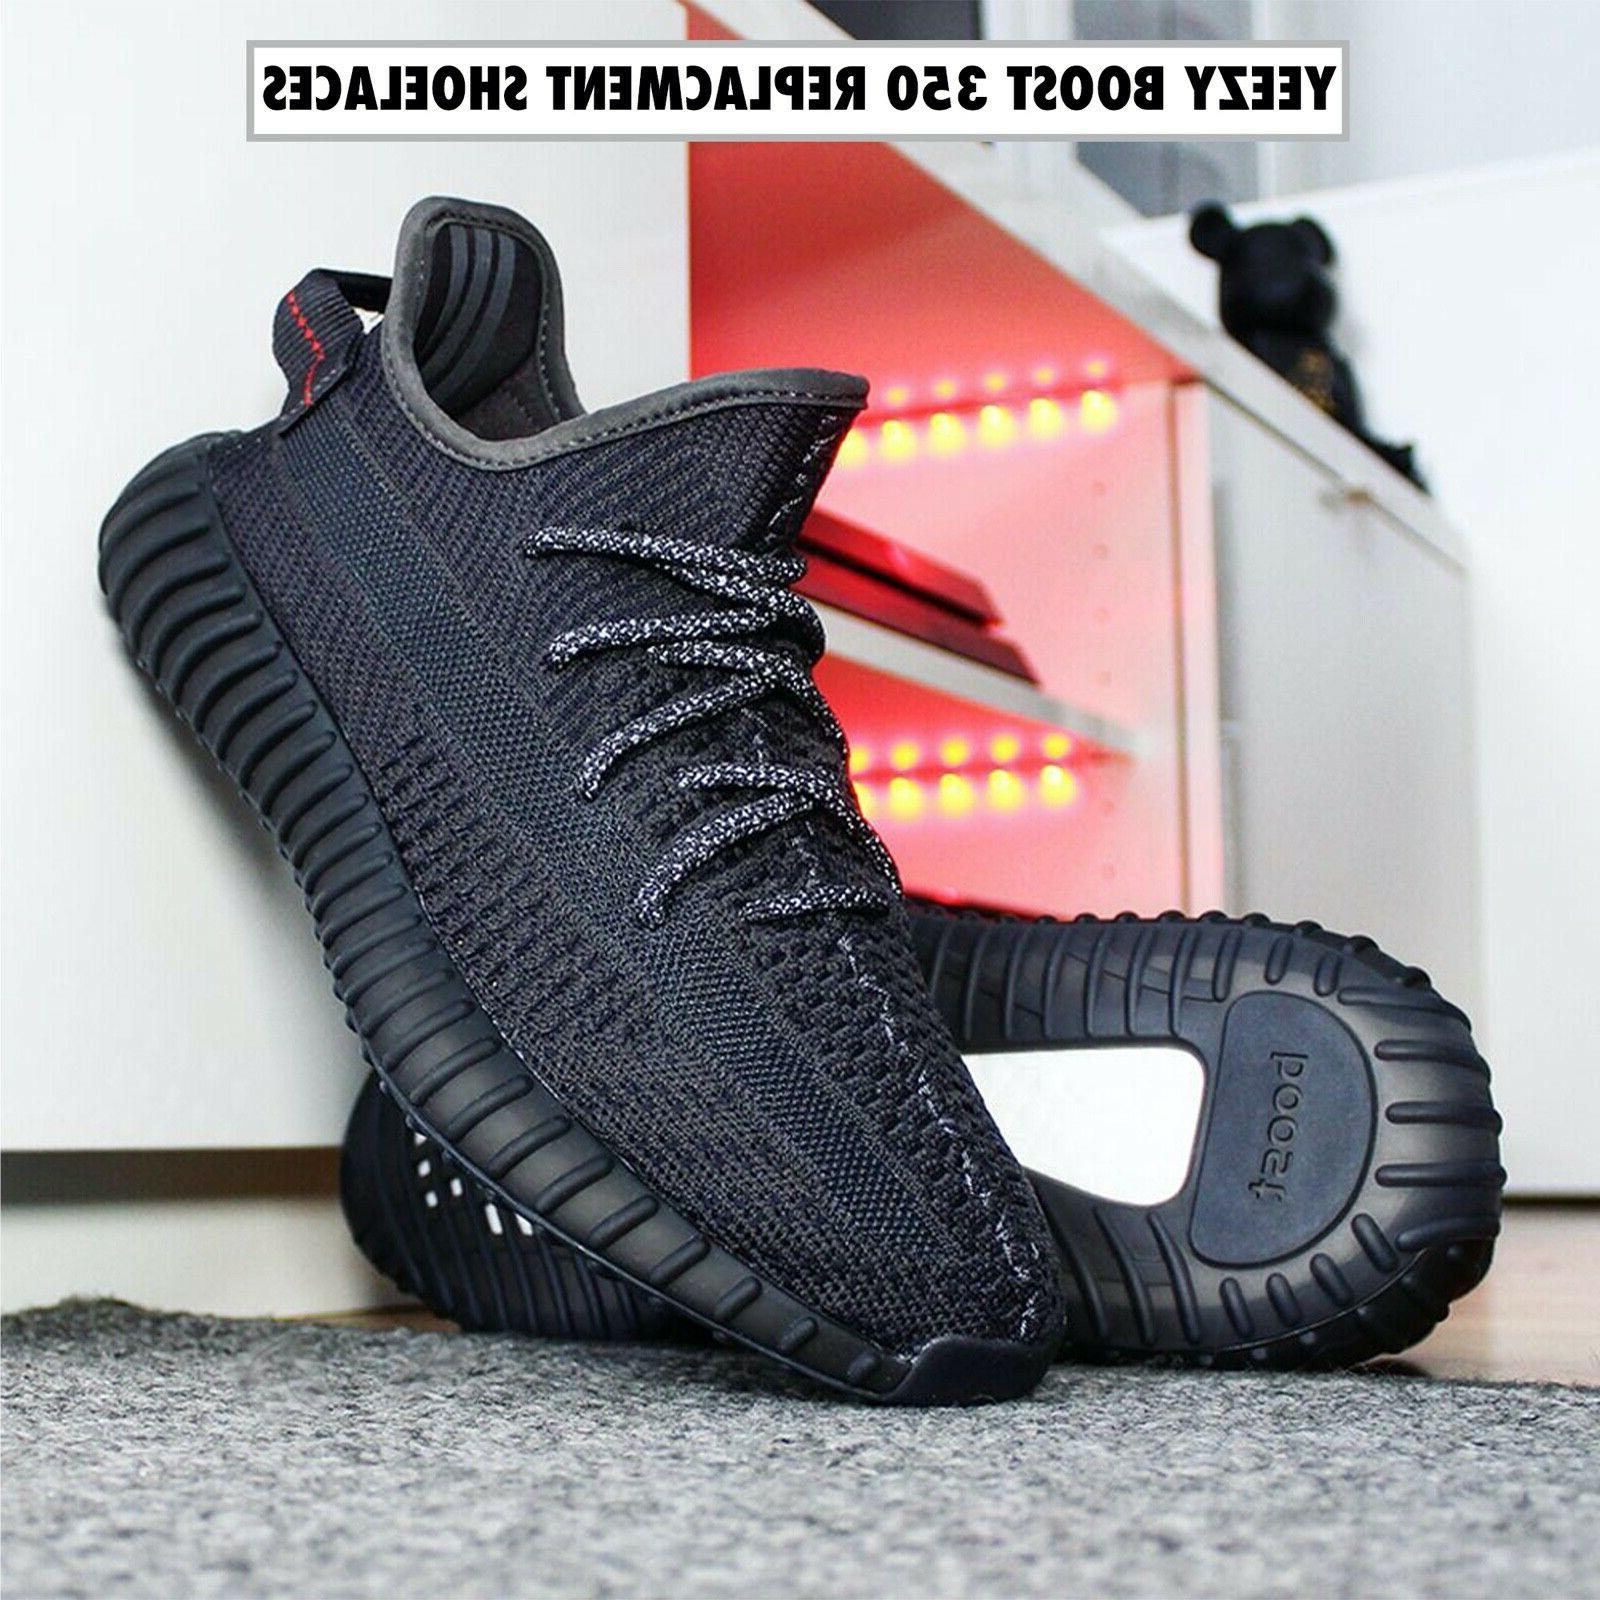 rope 350 boost replacement shoelaces yeezy laces